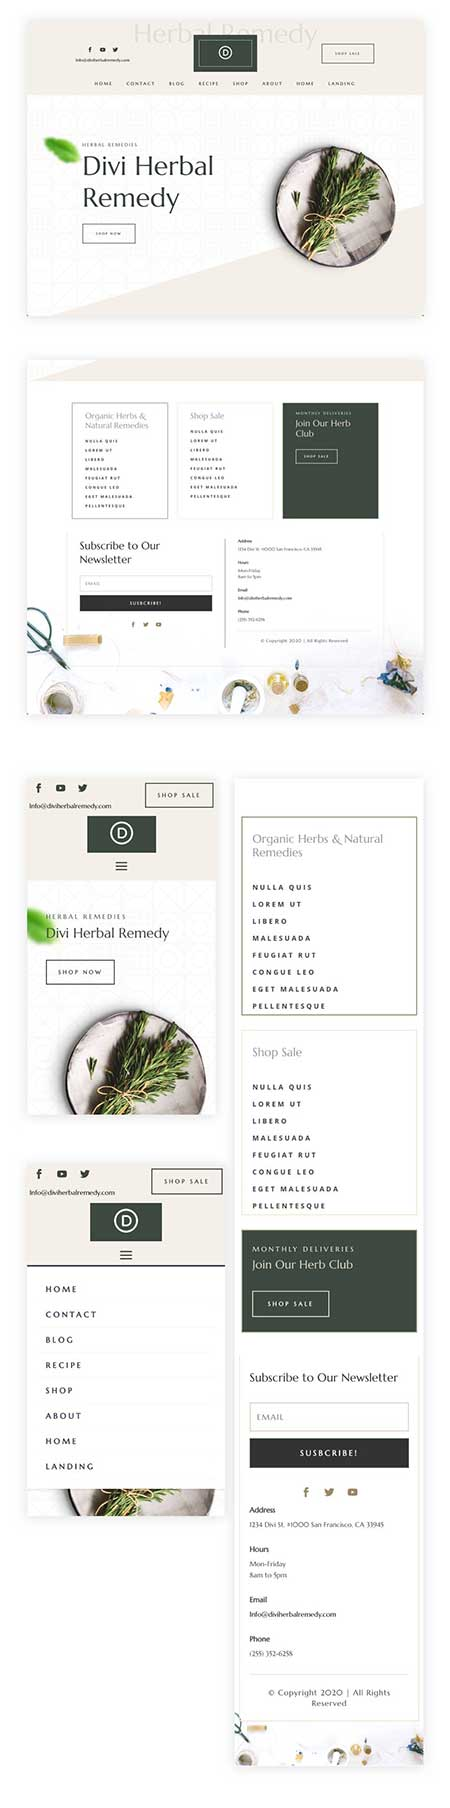 Divi herbal header & footer templates